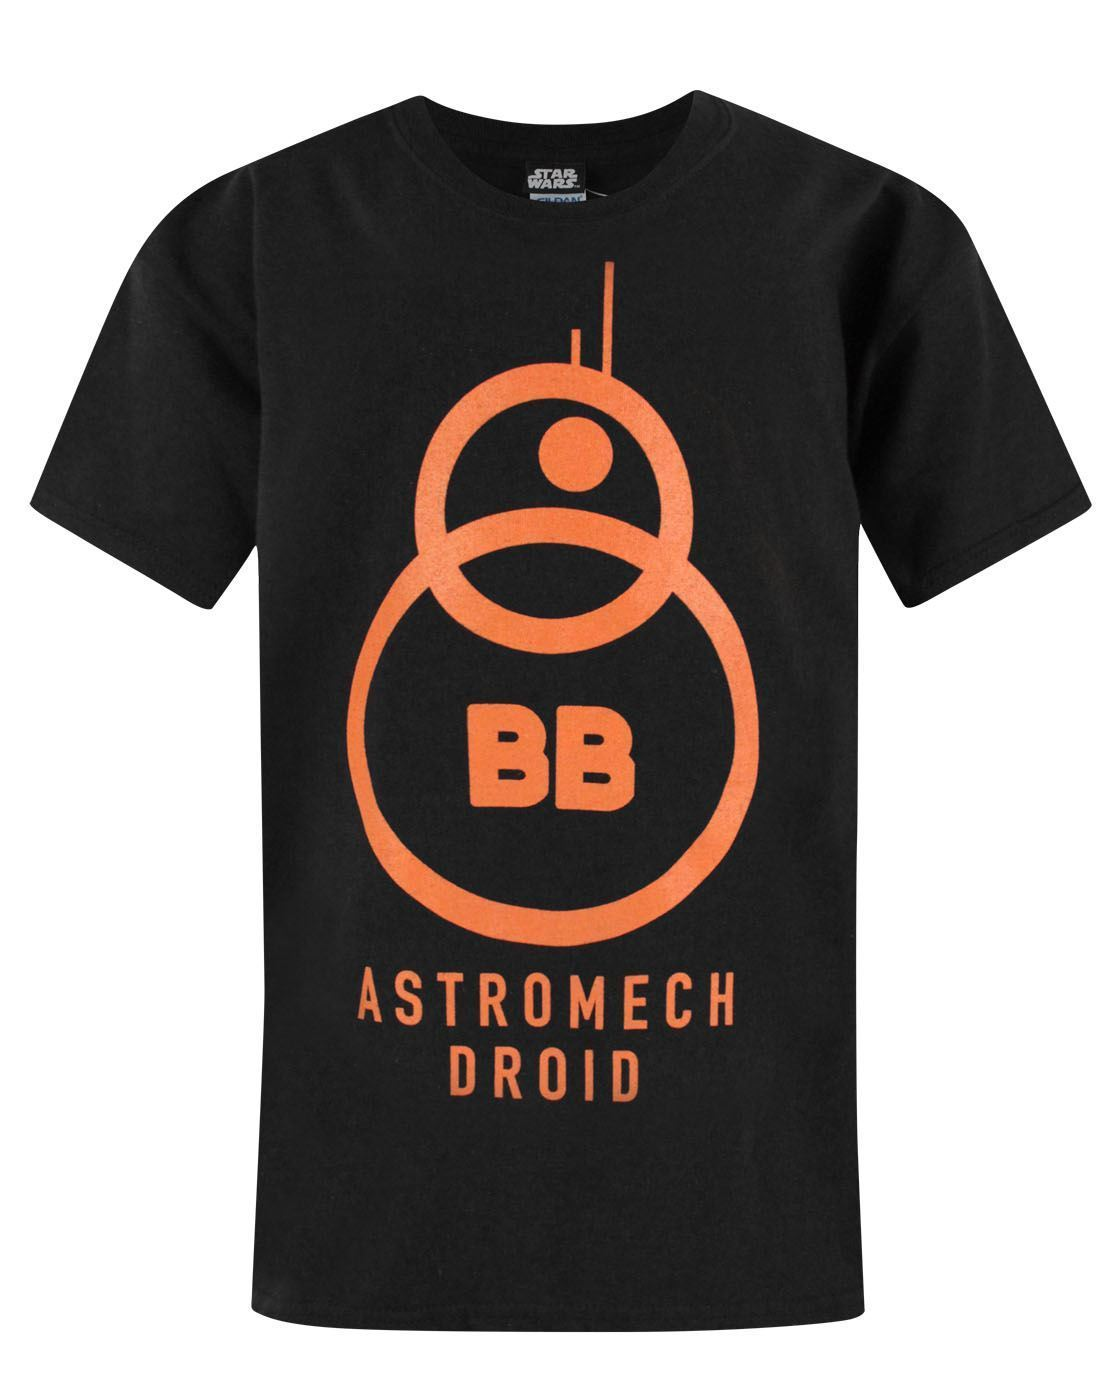 Star Wars The Force Awakens BB-8 Astromech Droid Boy's T-Shirt